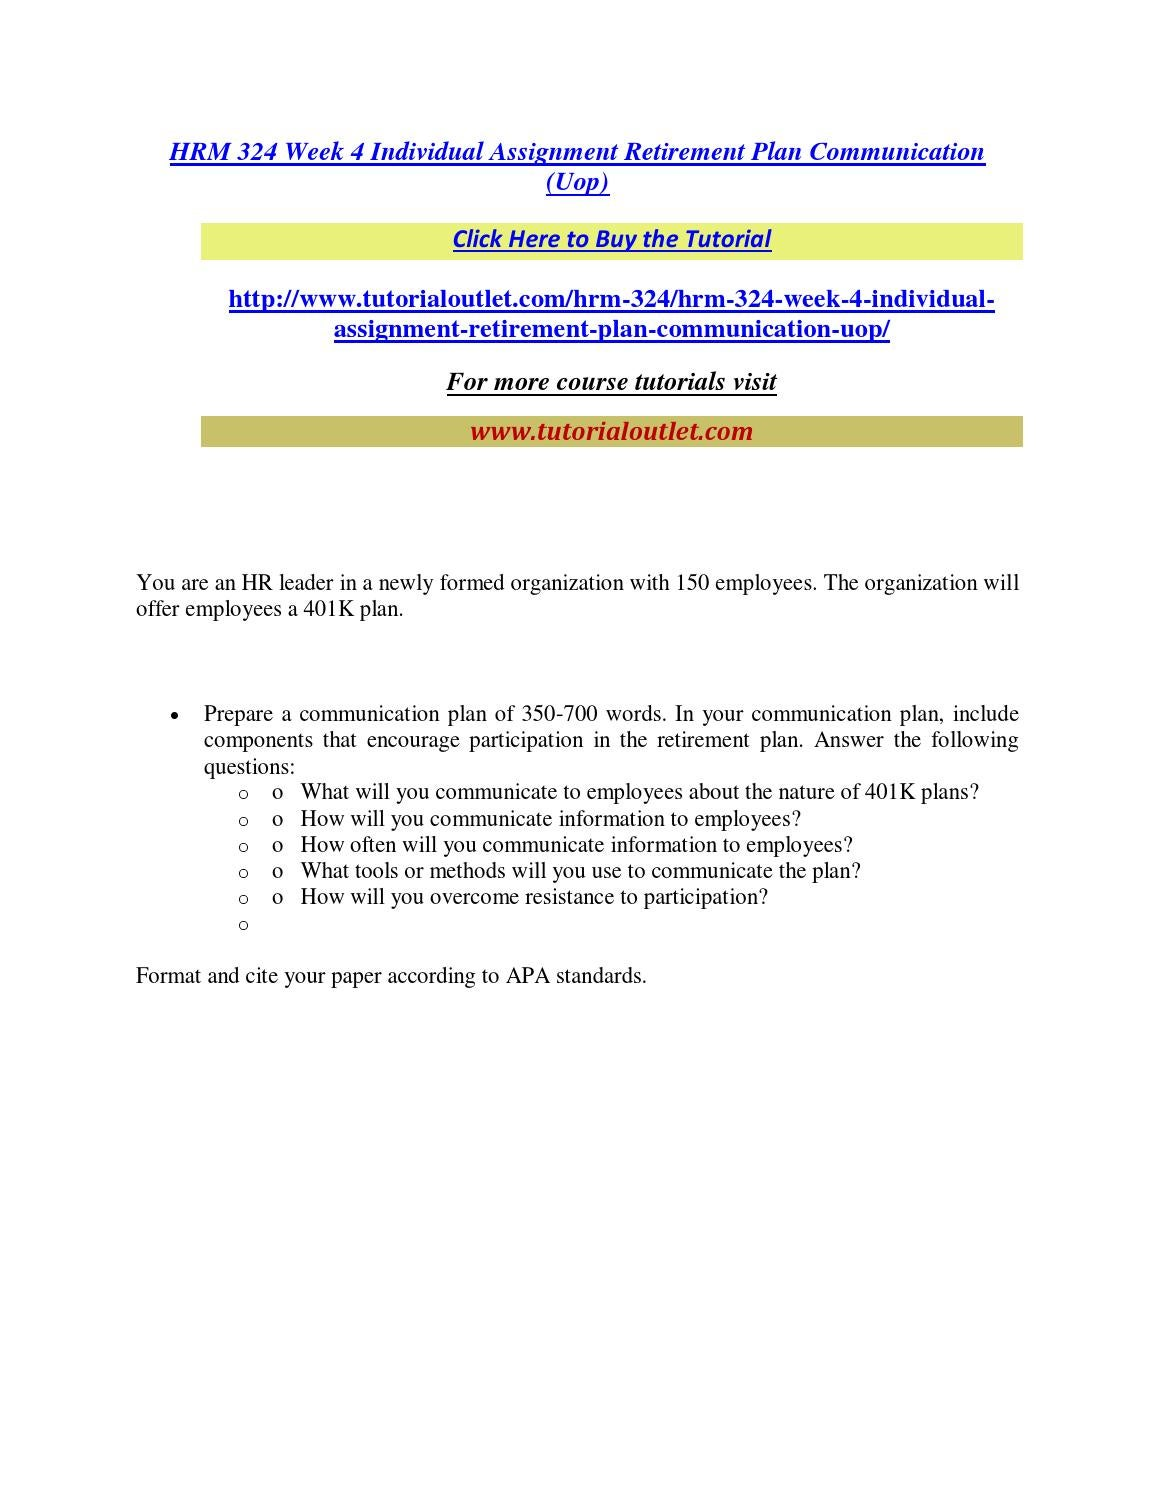 Hrm 324 Week 4 Individual Assignment Retirement Plan Communication Uop By BBCB